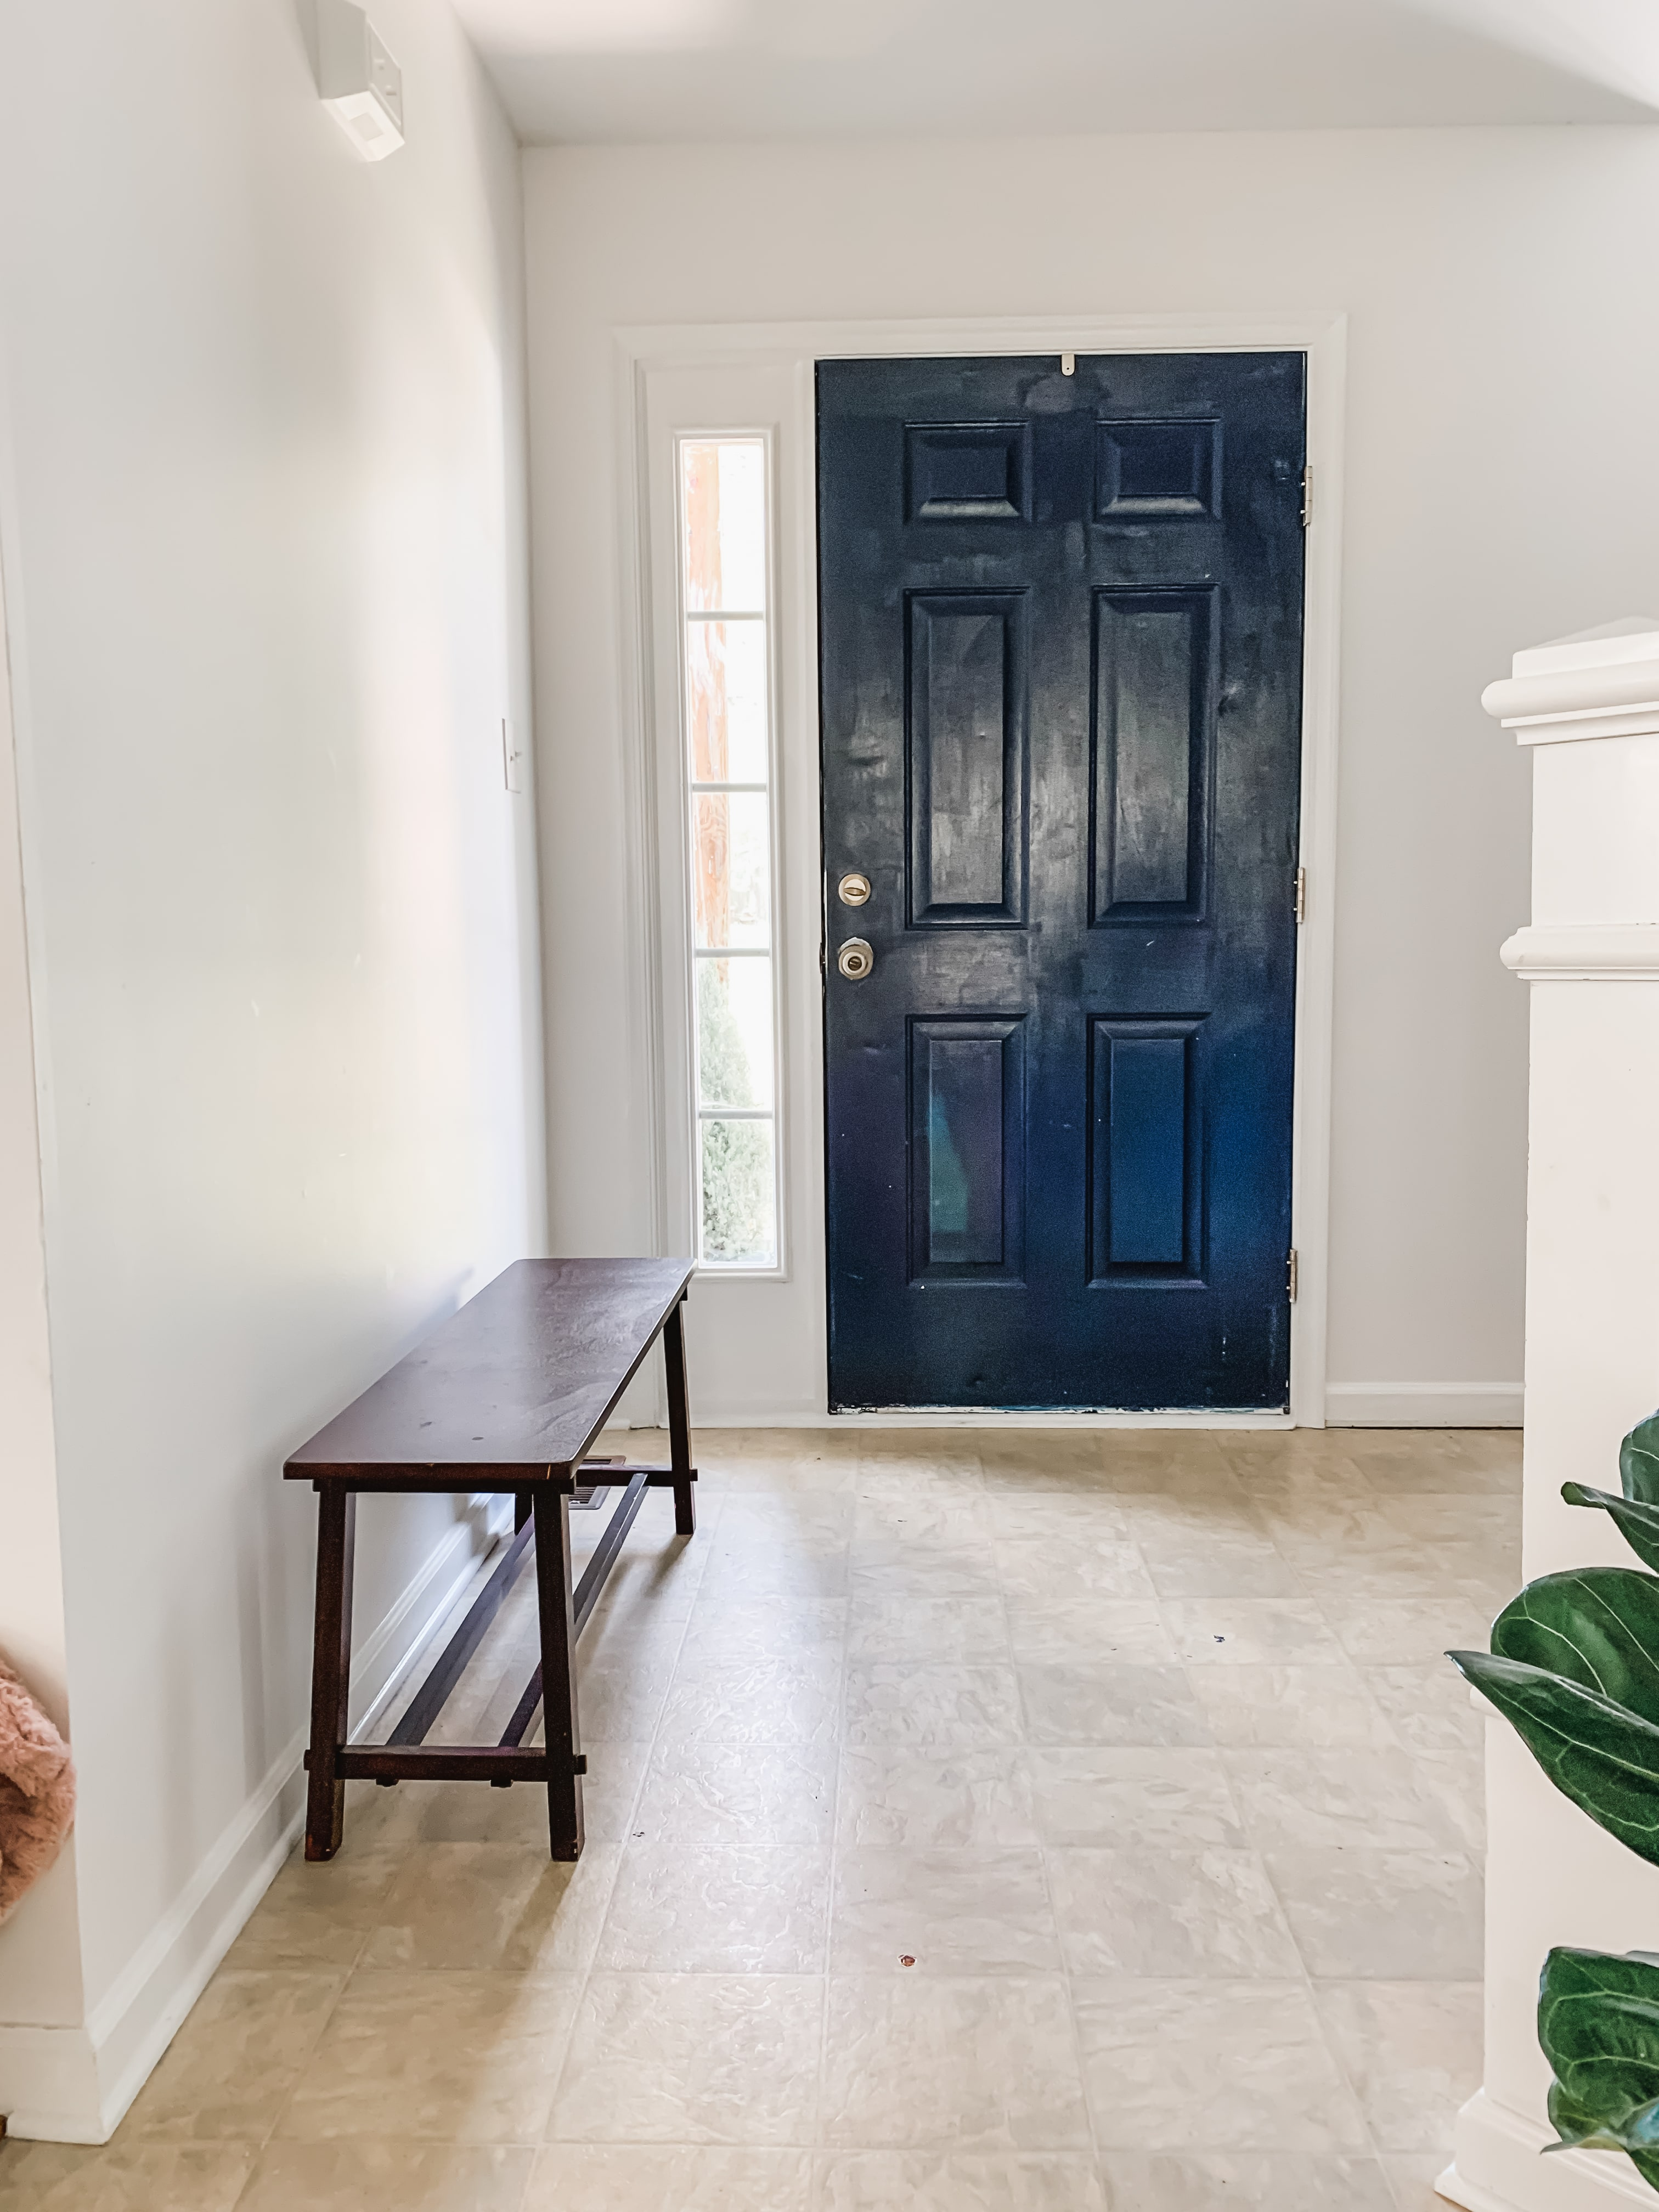 Before photos of Entryway for Spring 2020 One Room Challenge